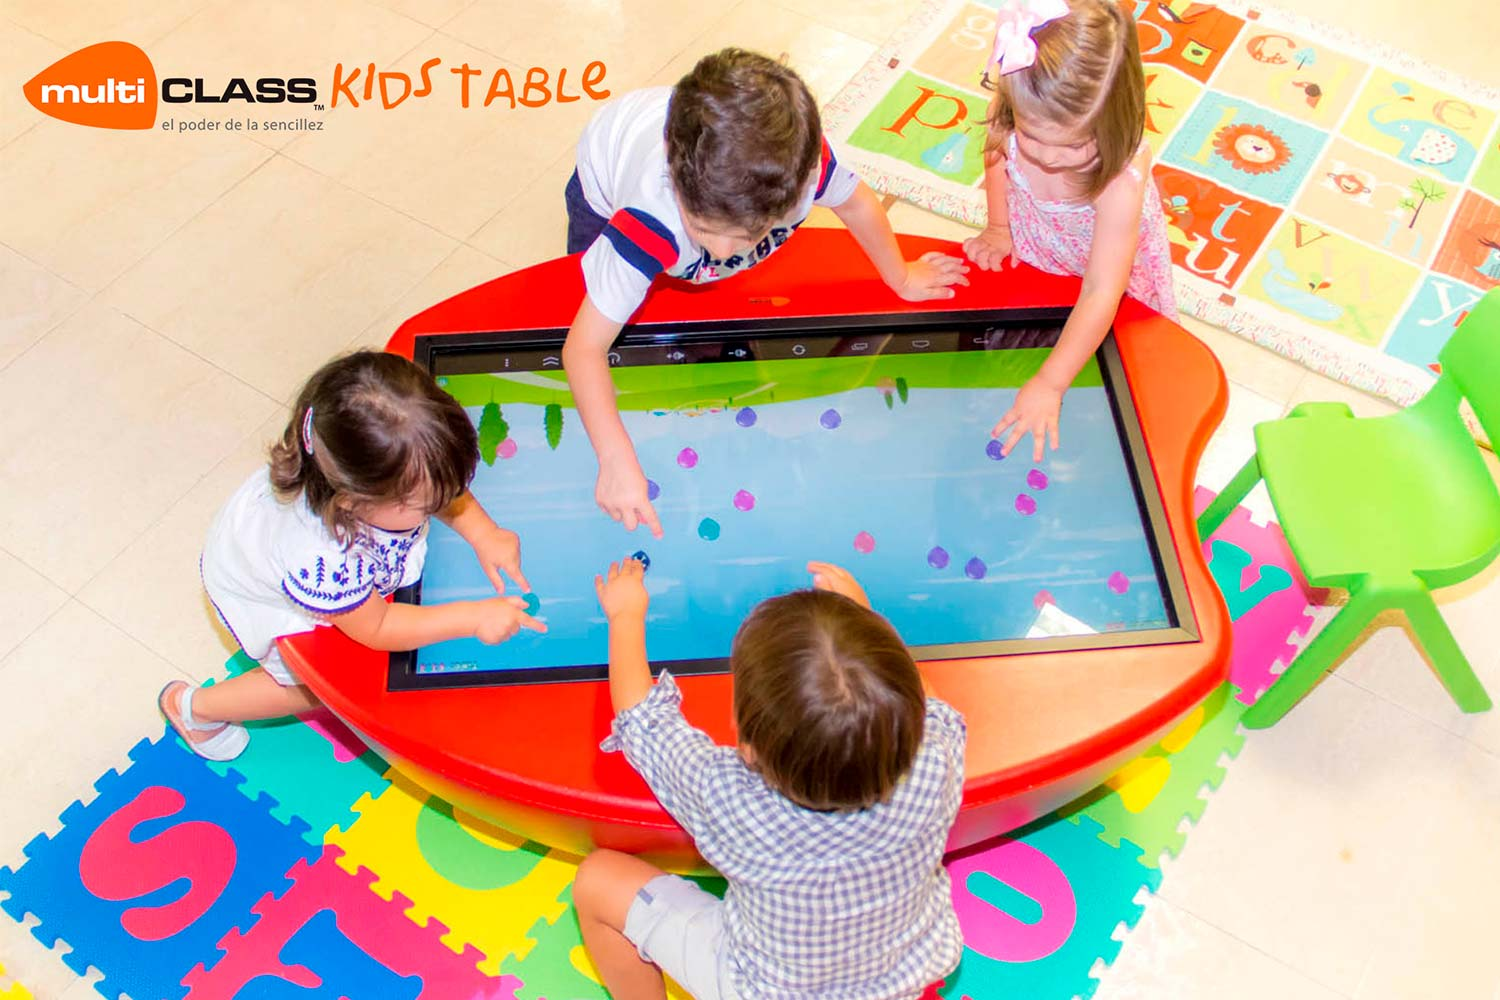 Touchscreen table multiCLASS Kids Table education